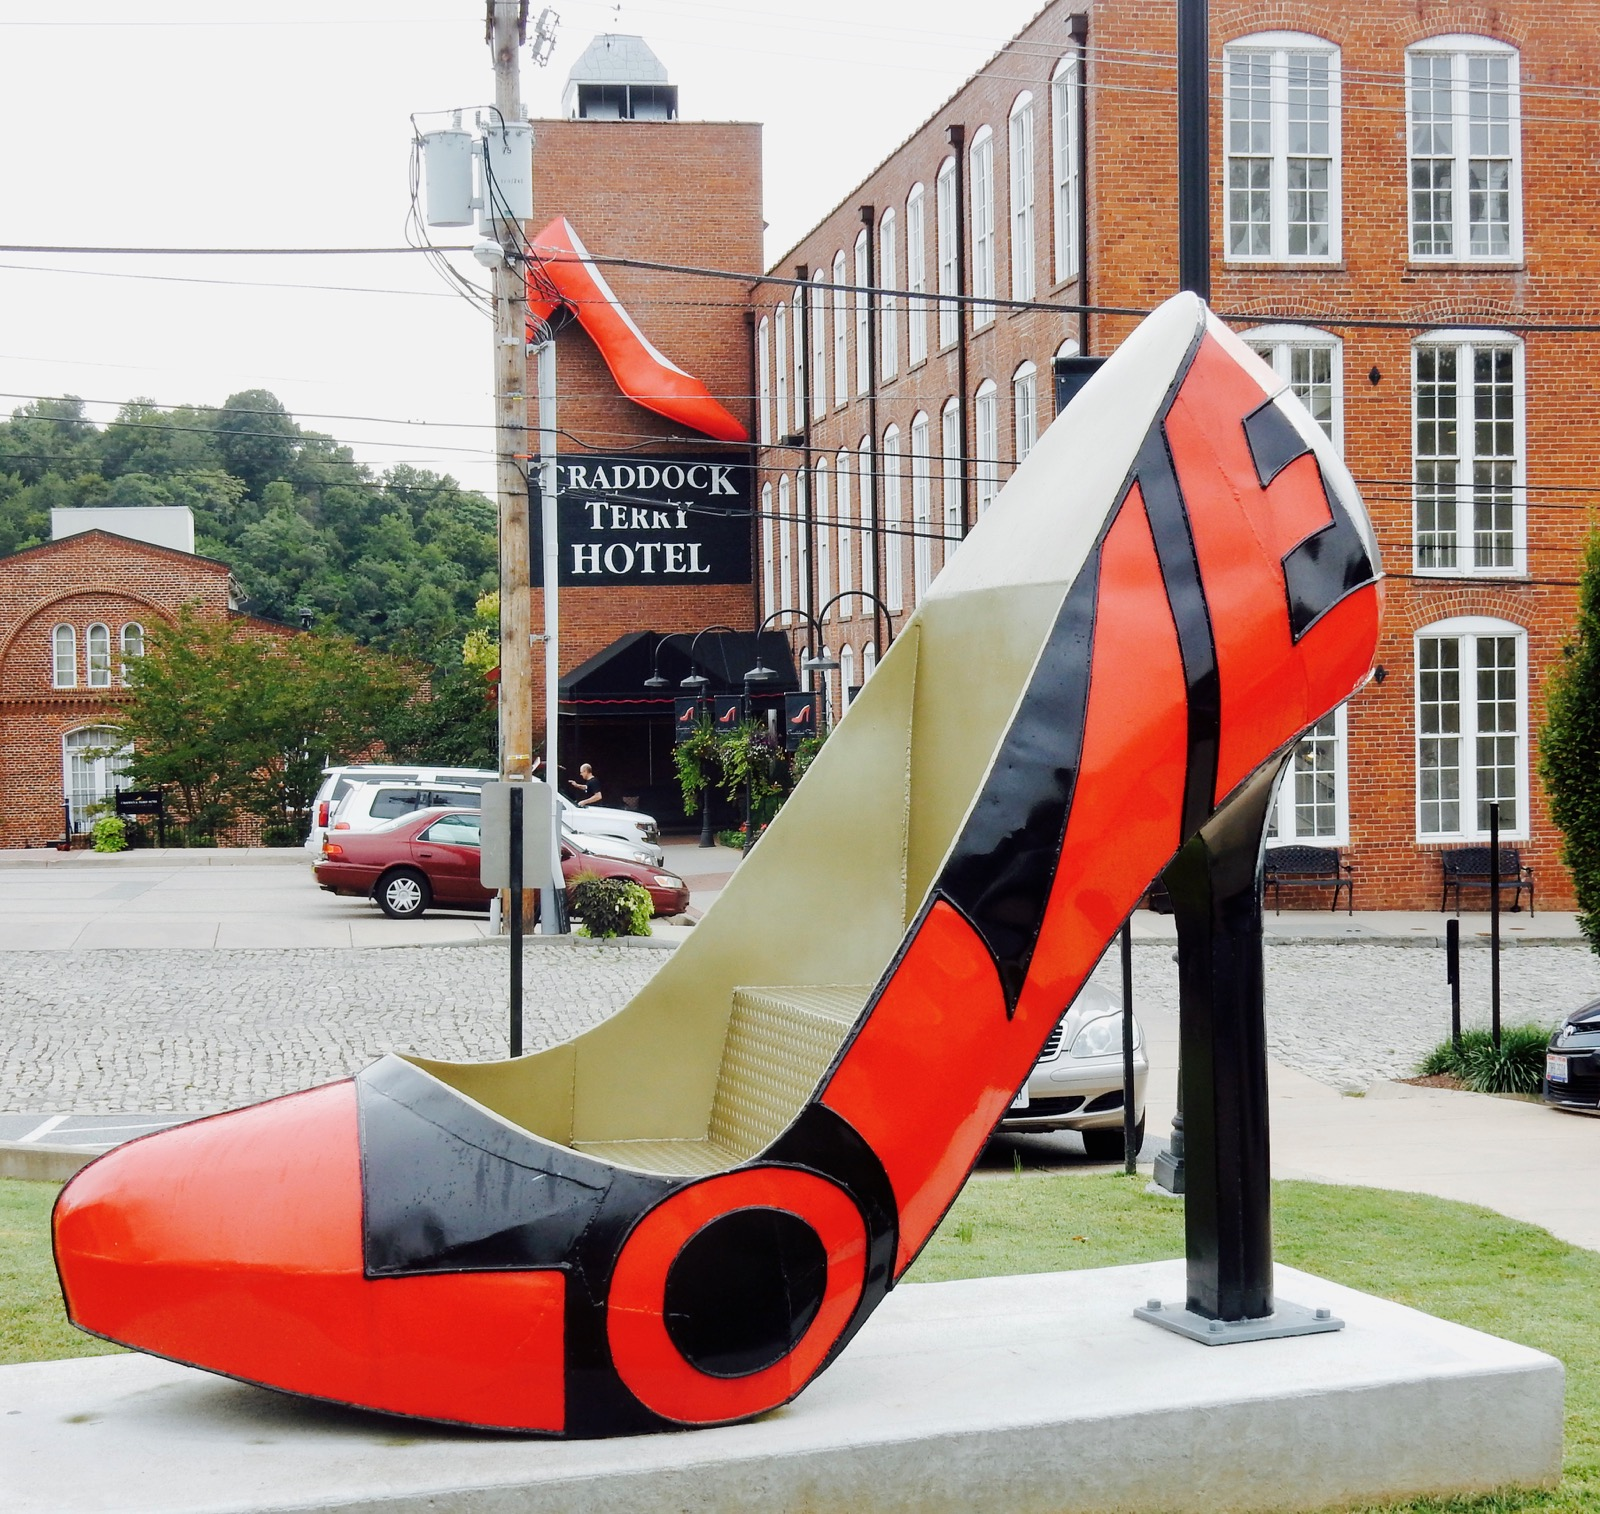 Lynchburg VA Love Sculpture - Giant Red Shoe.